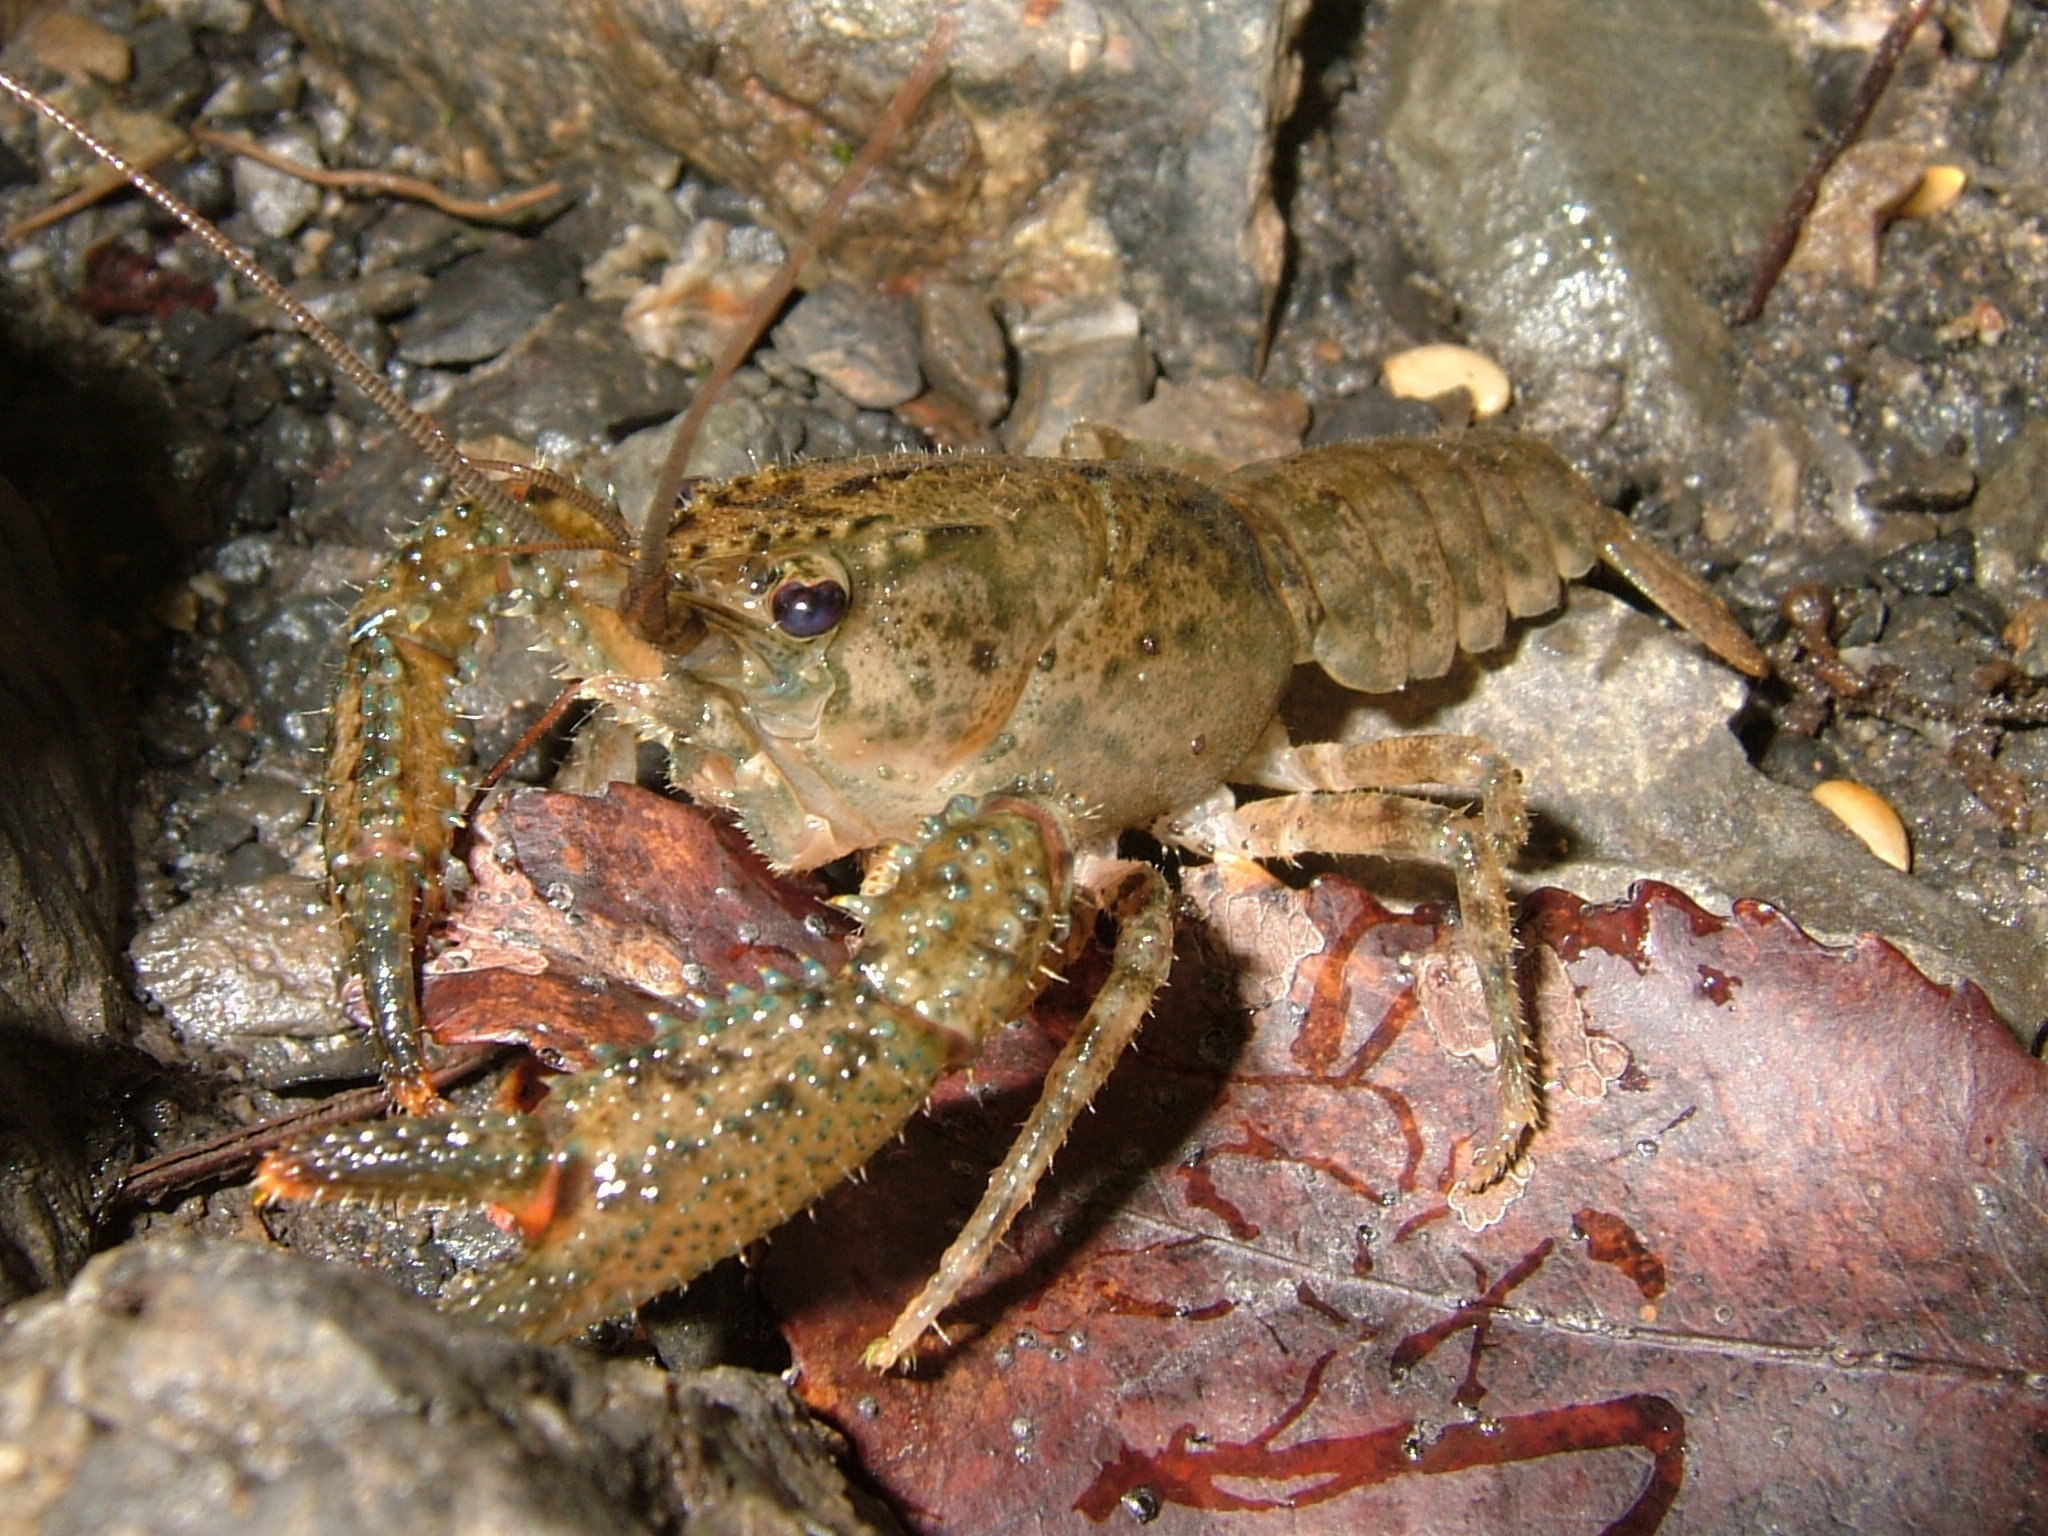 Crayfish Wikipedia